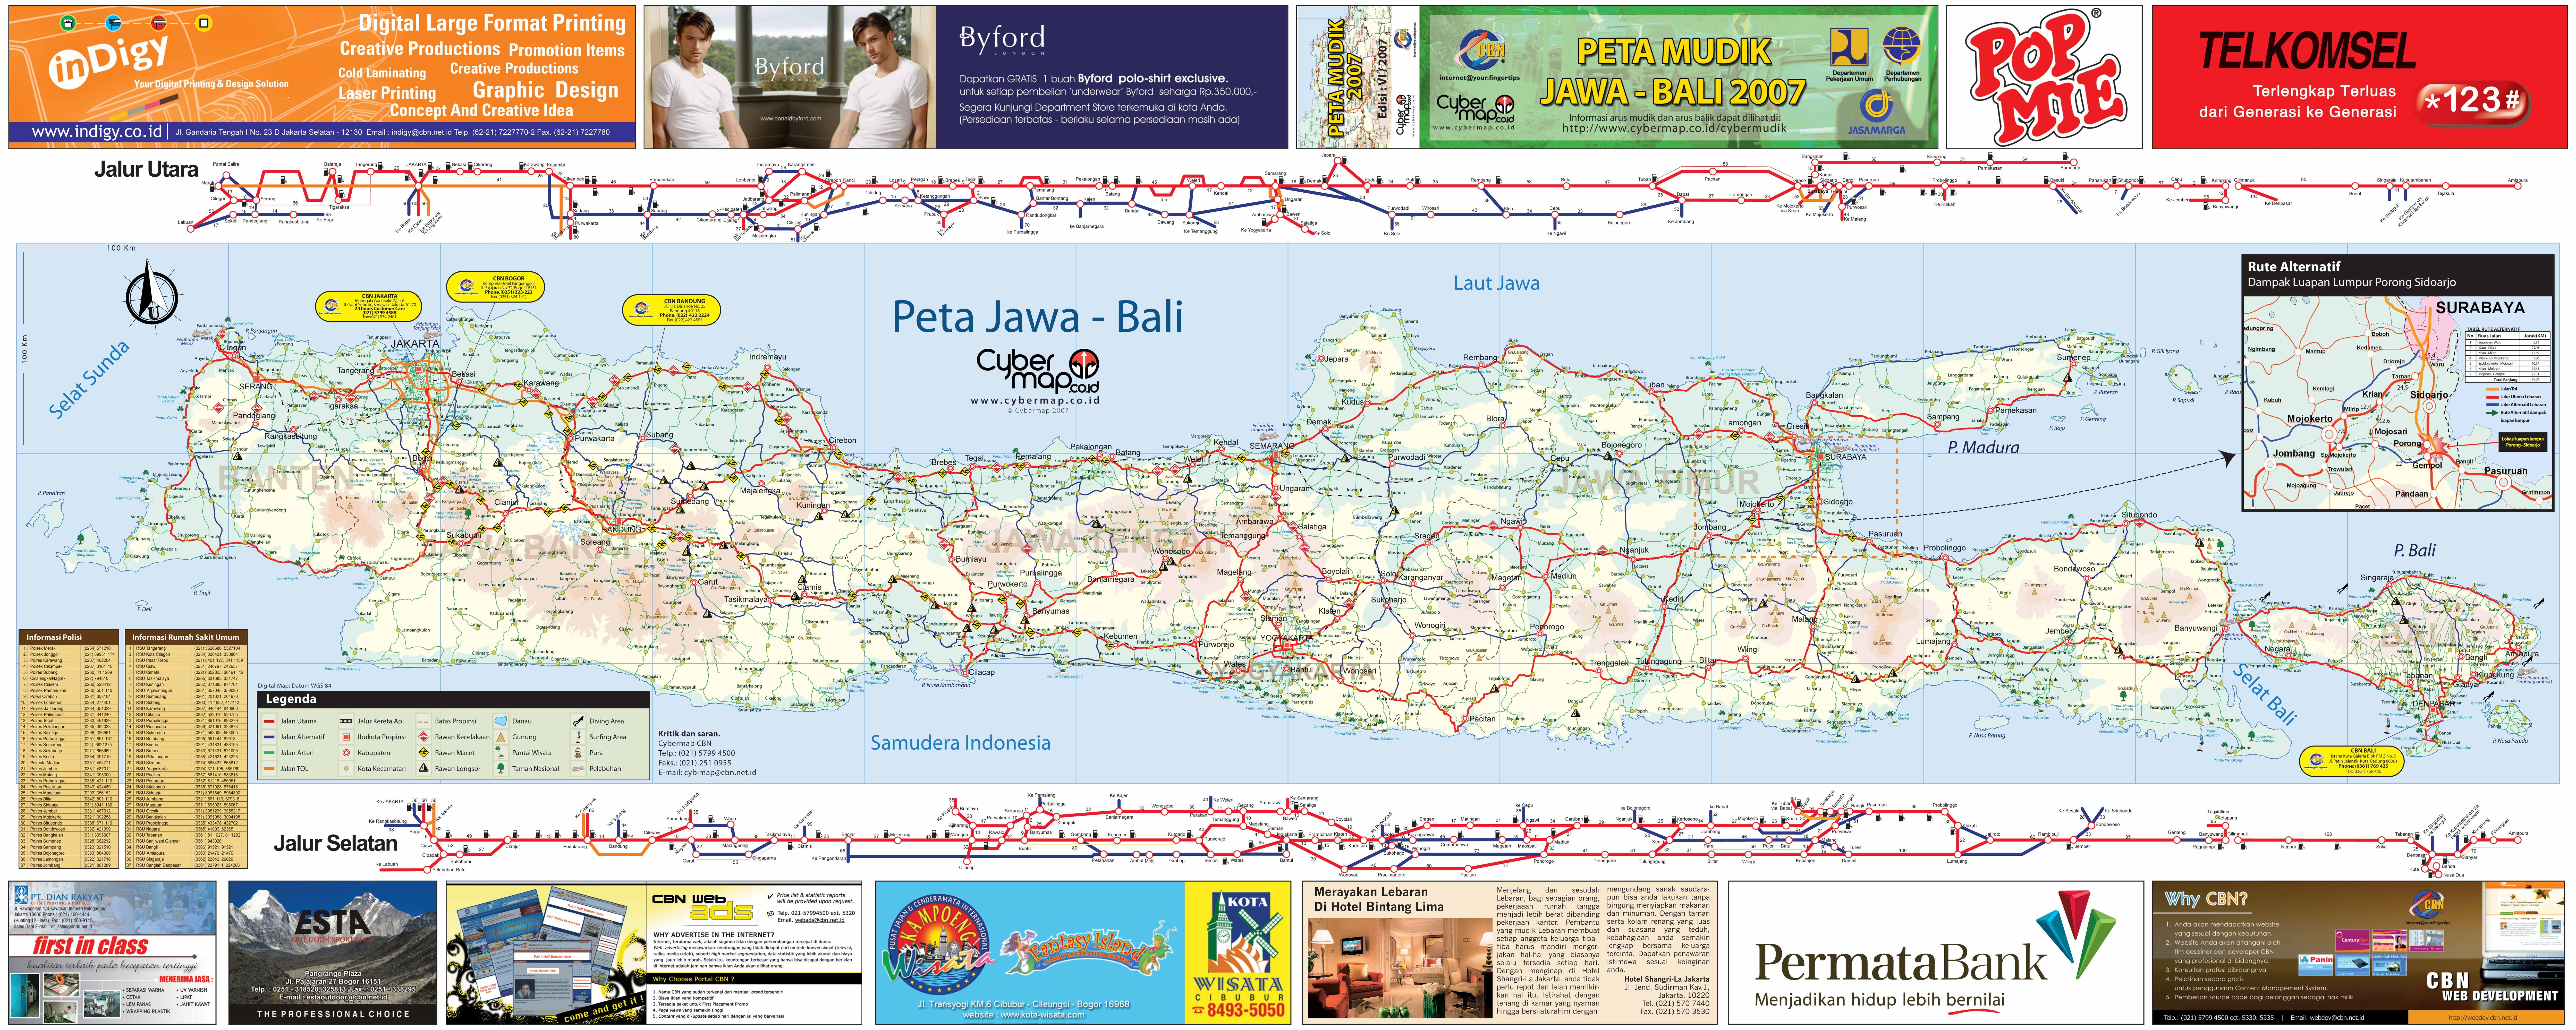 mudik in indonesia Indonesia travel advice during mudik/ramadam itinerary 2017 mar 6, 2017, 8:43 am i will be travelling indonesia around indonesia flying into denpasar bali 17th june 2017 and departing from bali 14th july 2017.